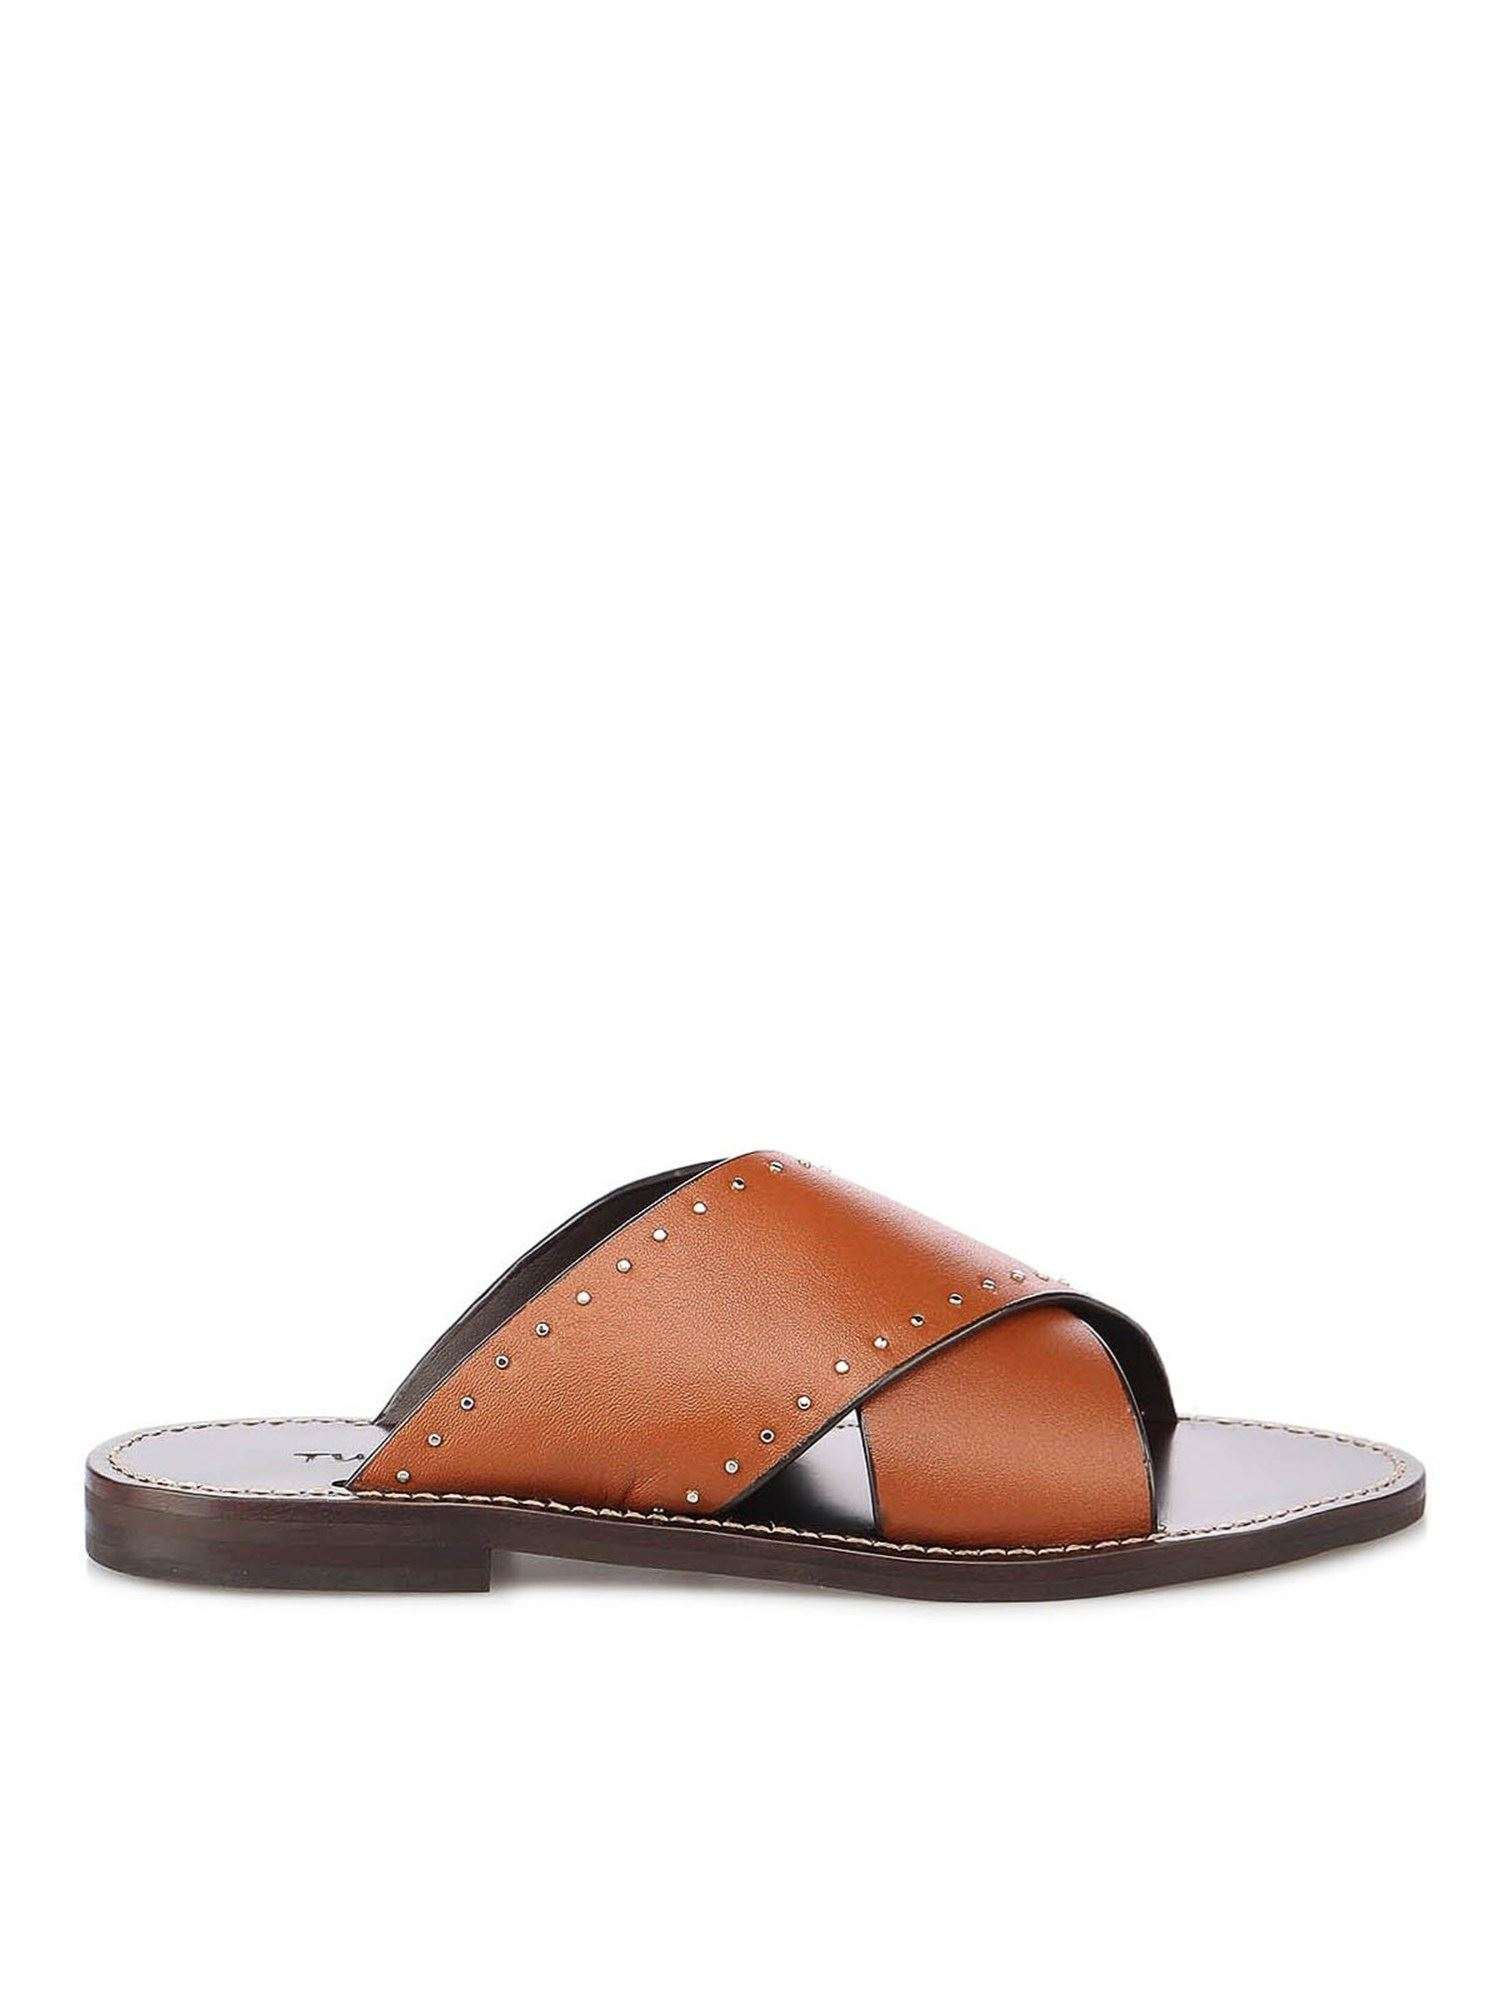 Twinset STUDDED LEATHER SANDALS IN TAN COLOR